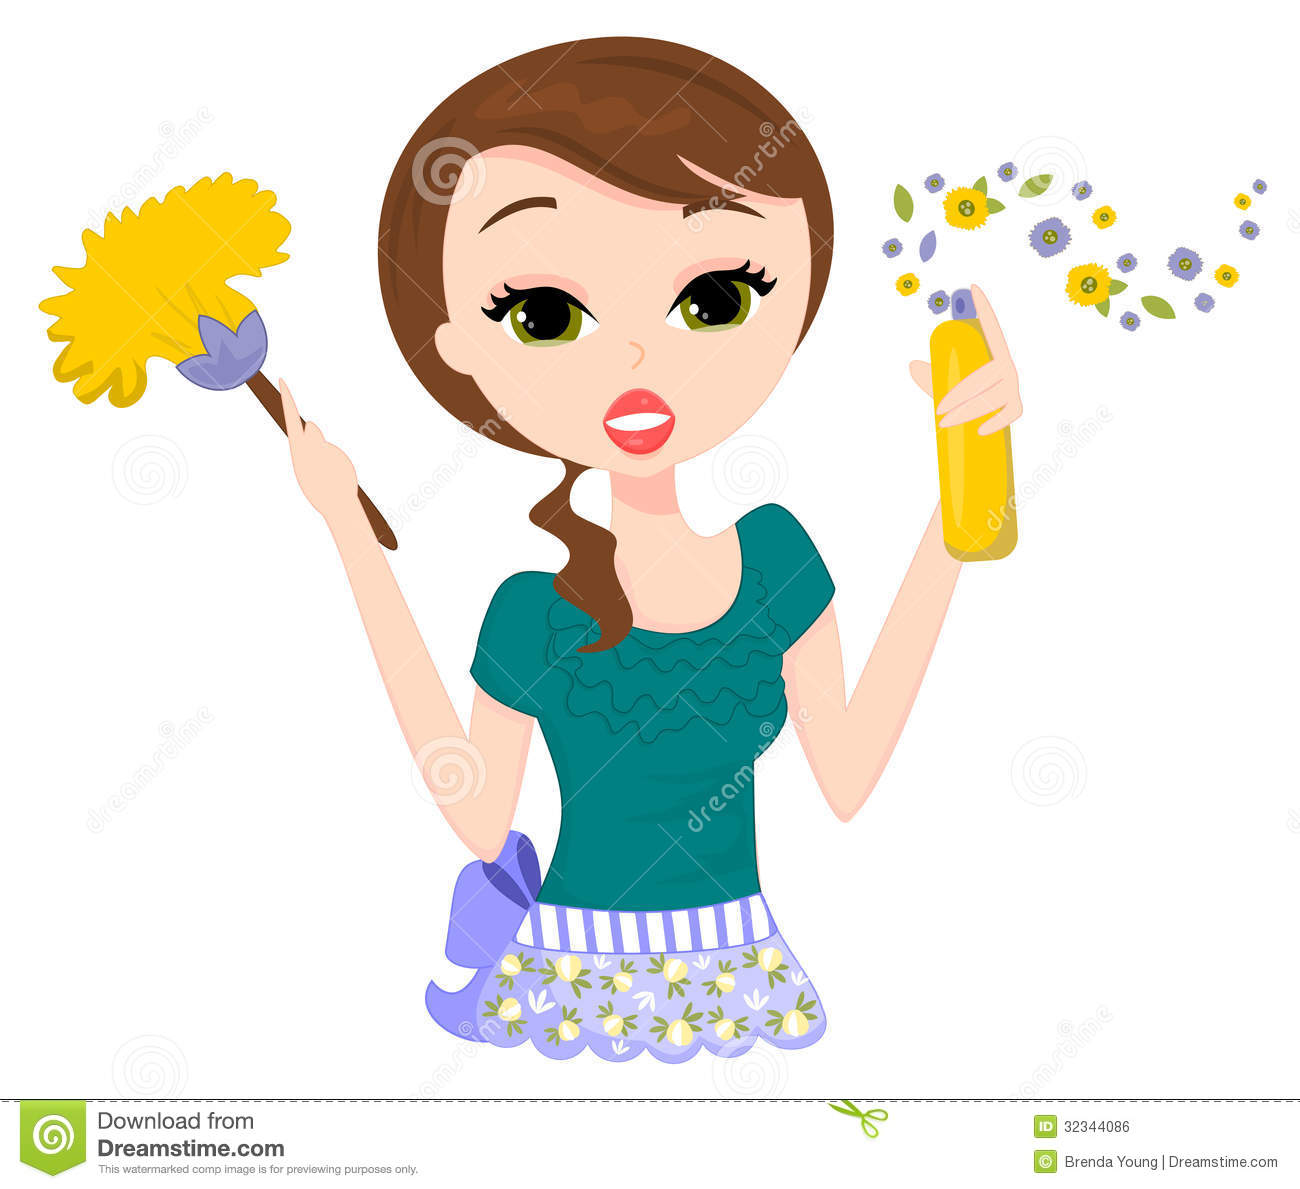 Old clipart cleaning lady Lady cleaning Visit  Art